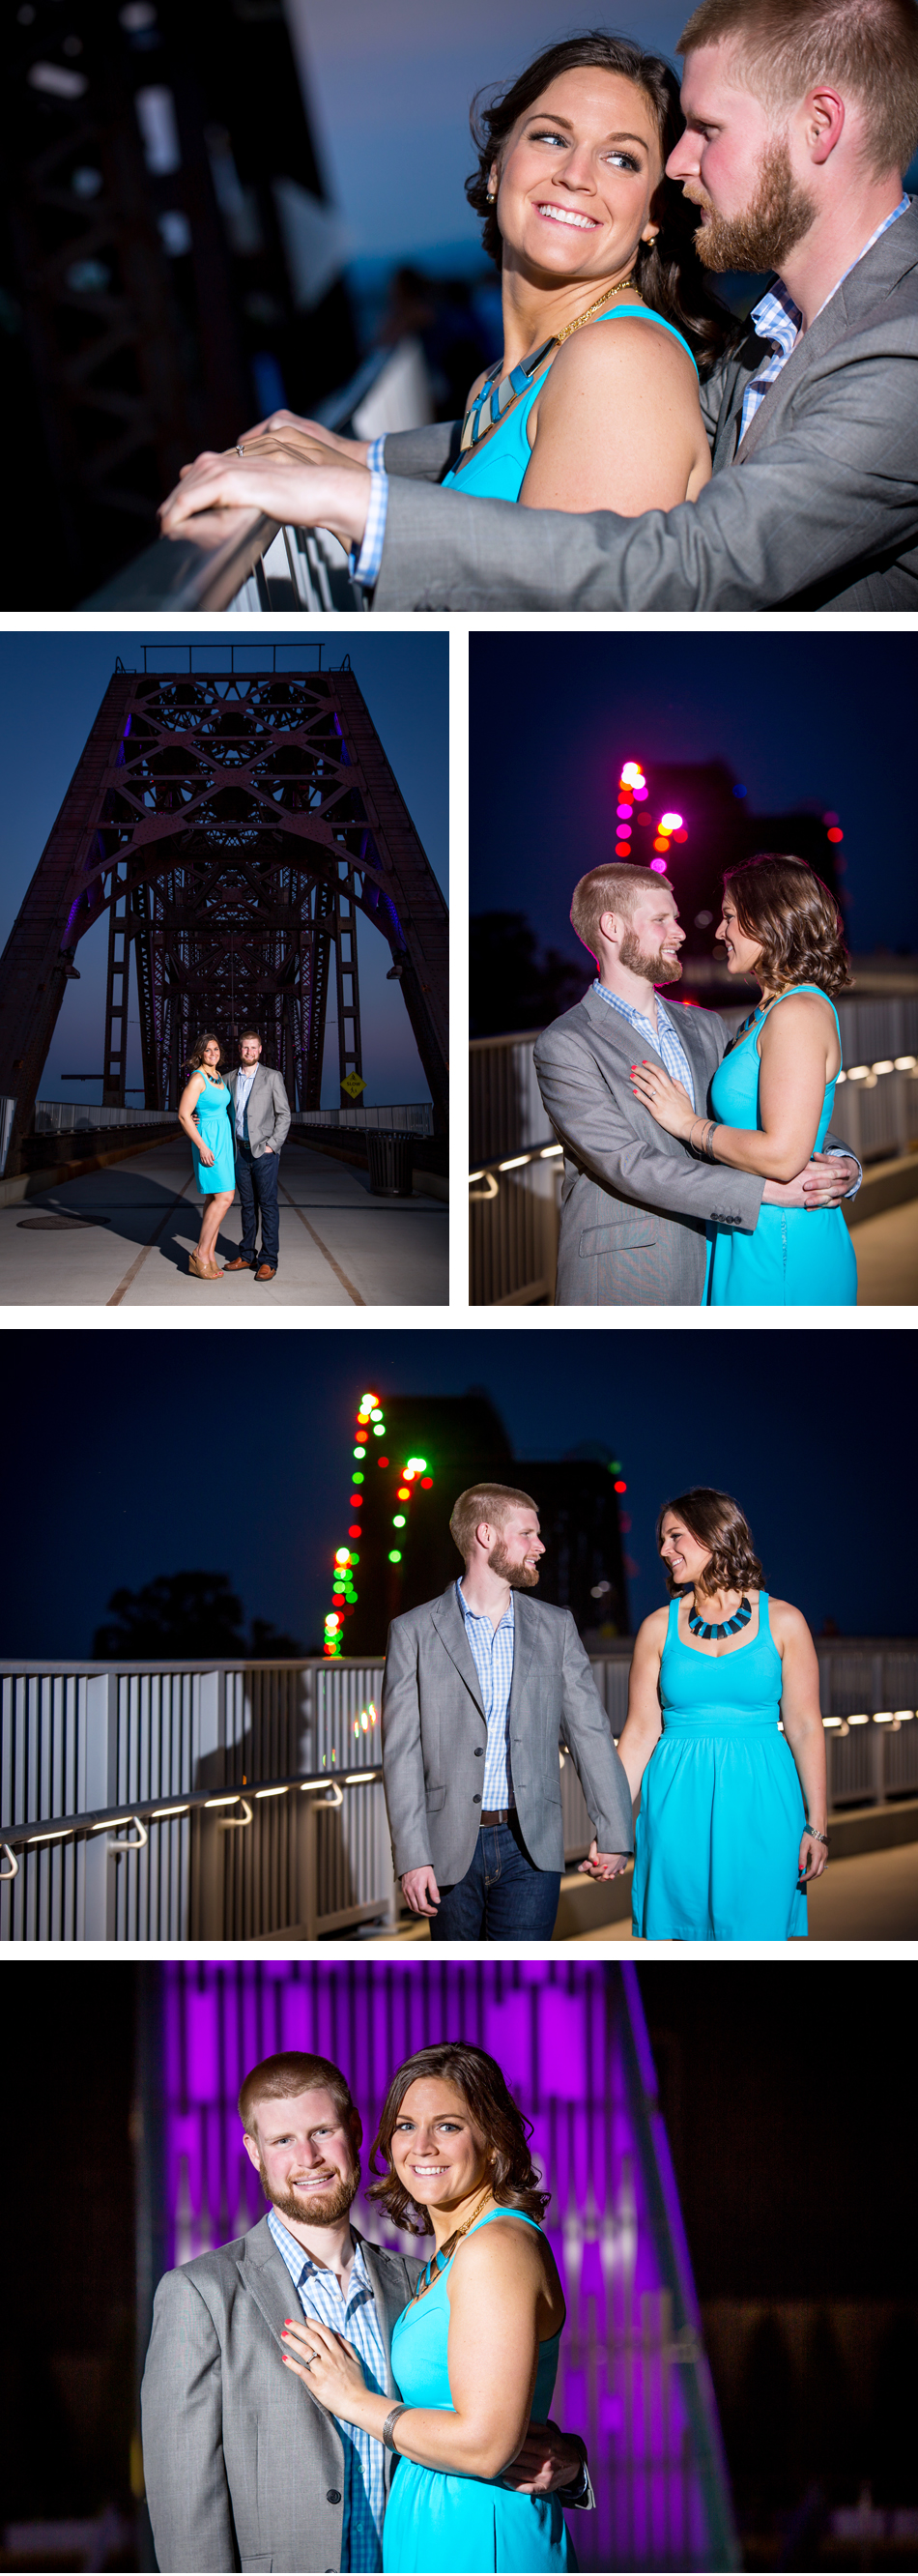 Big Four Bridge Engagement Photos eMotion image